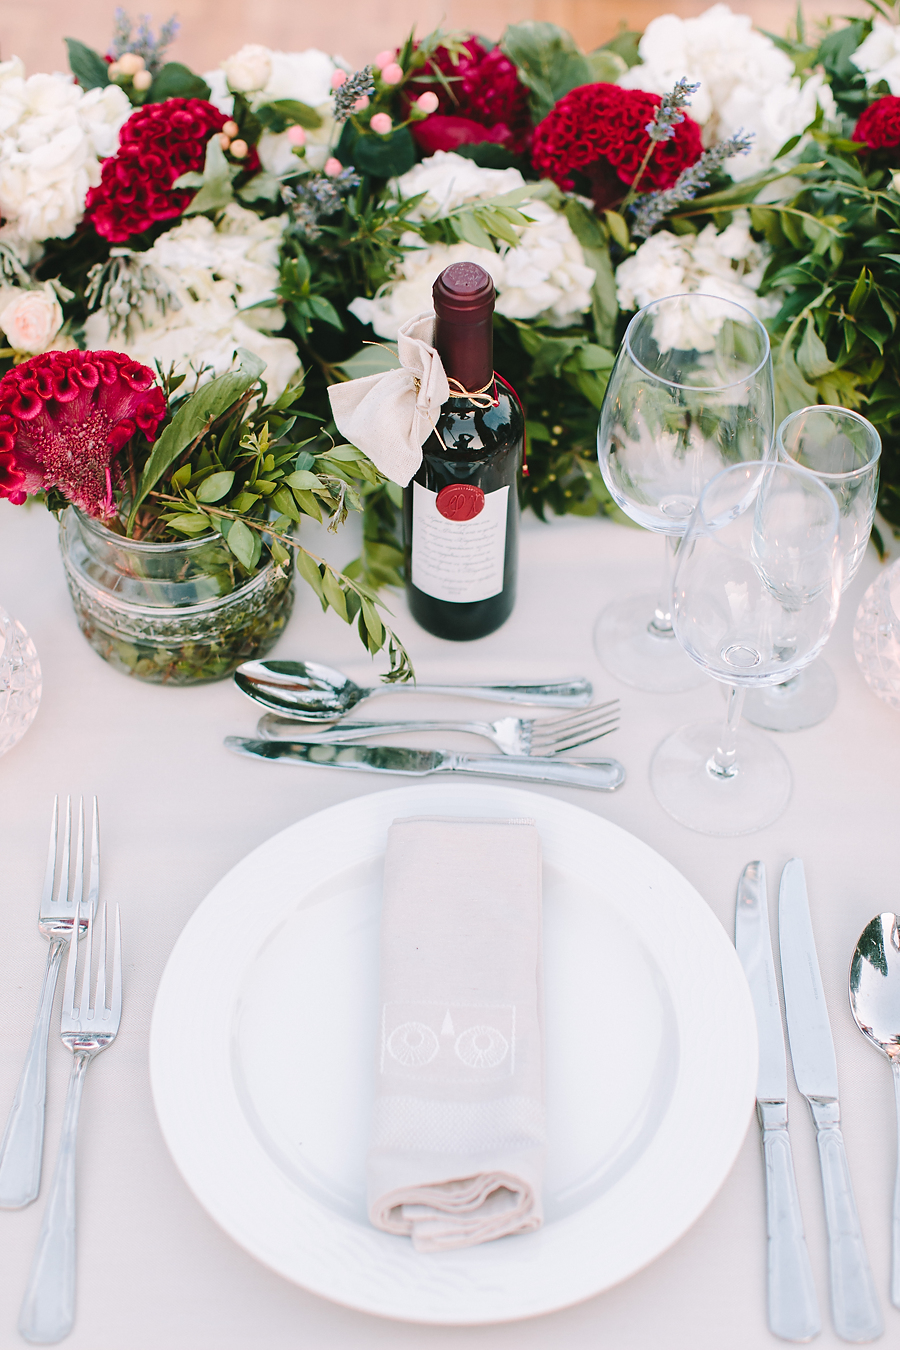 Wedding in Athens Lux Vineyard Table Arrangement Art de la Table